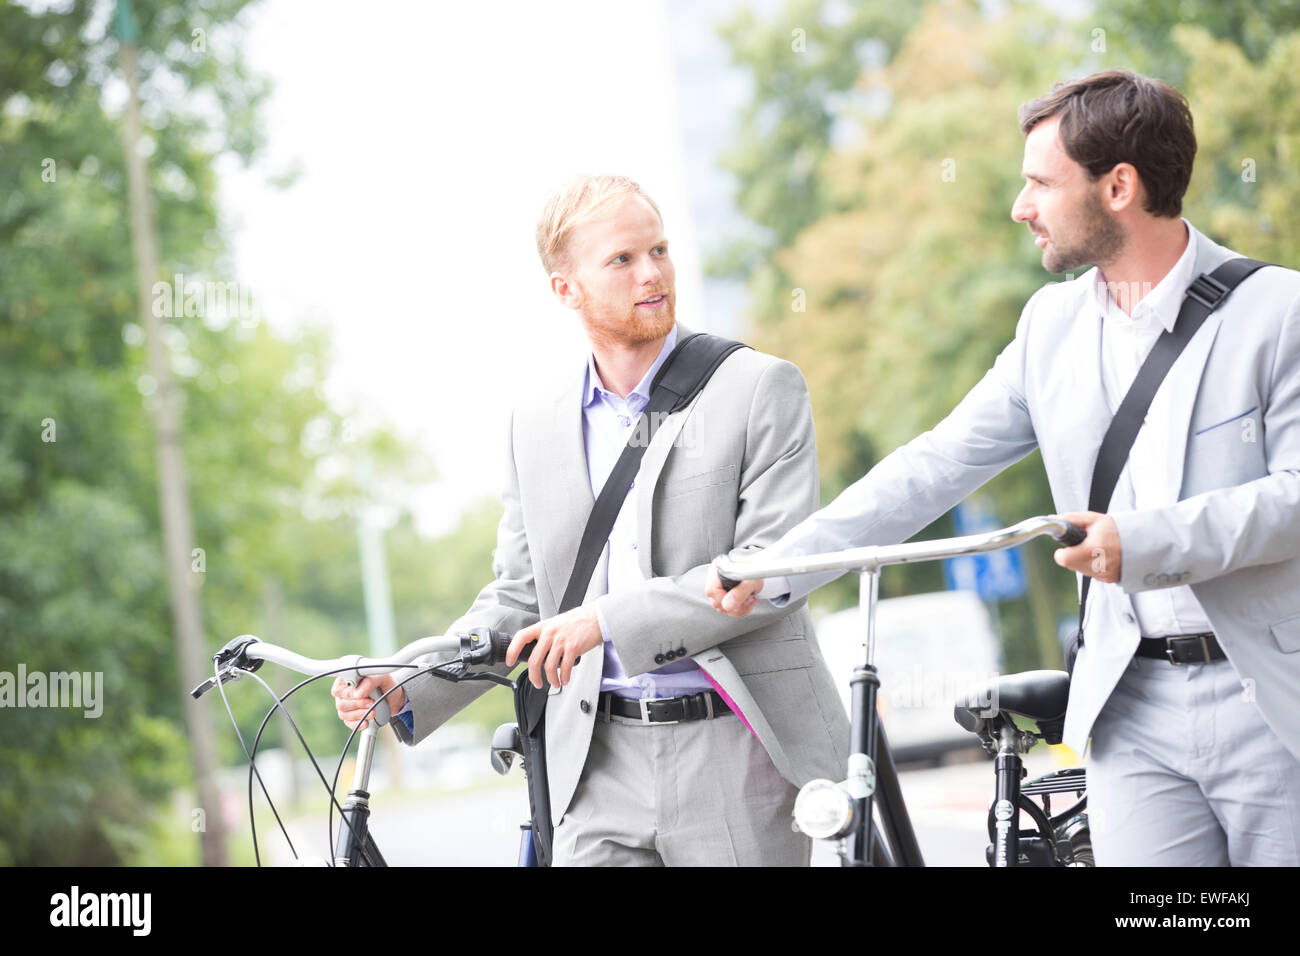 Businessmen looking at each other while holding bicycles outdoors - Stock Image